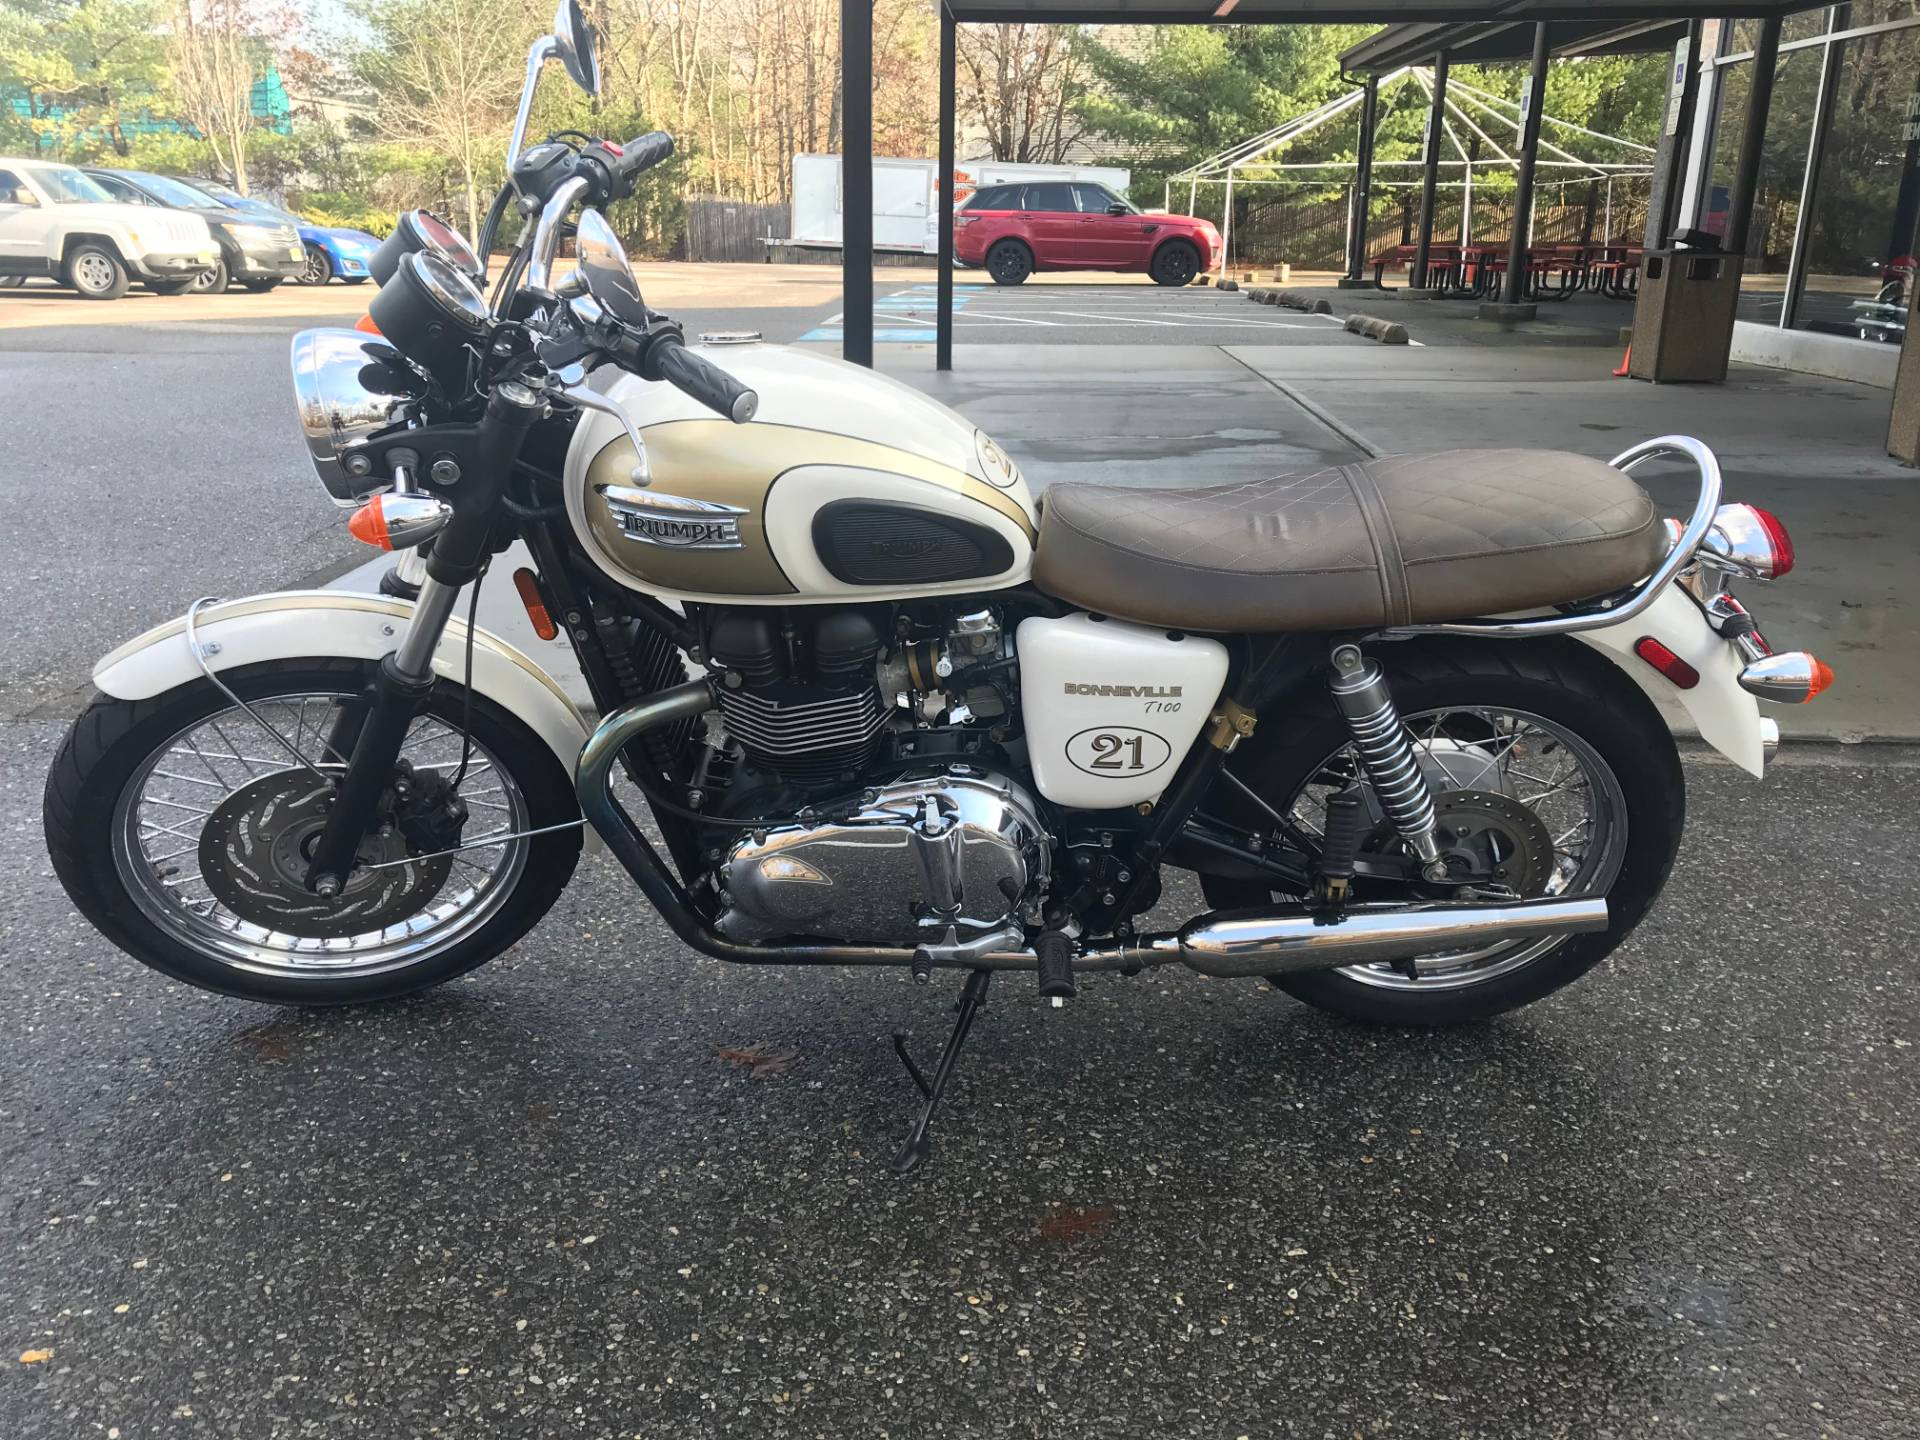 2014 TRIUMPH BONNEVILLE in Lakewood, New Jersey - Photo 2